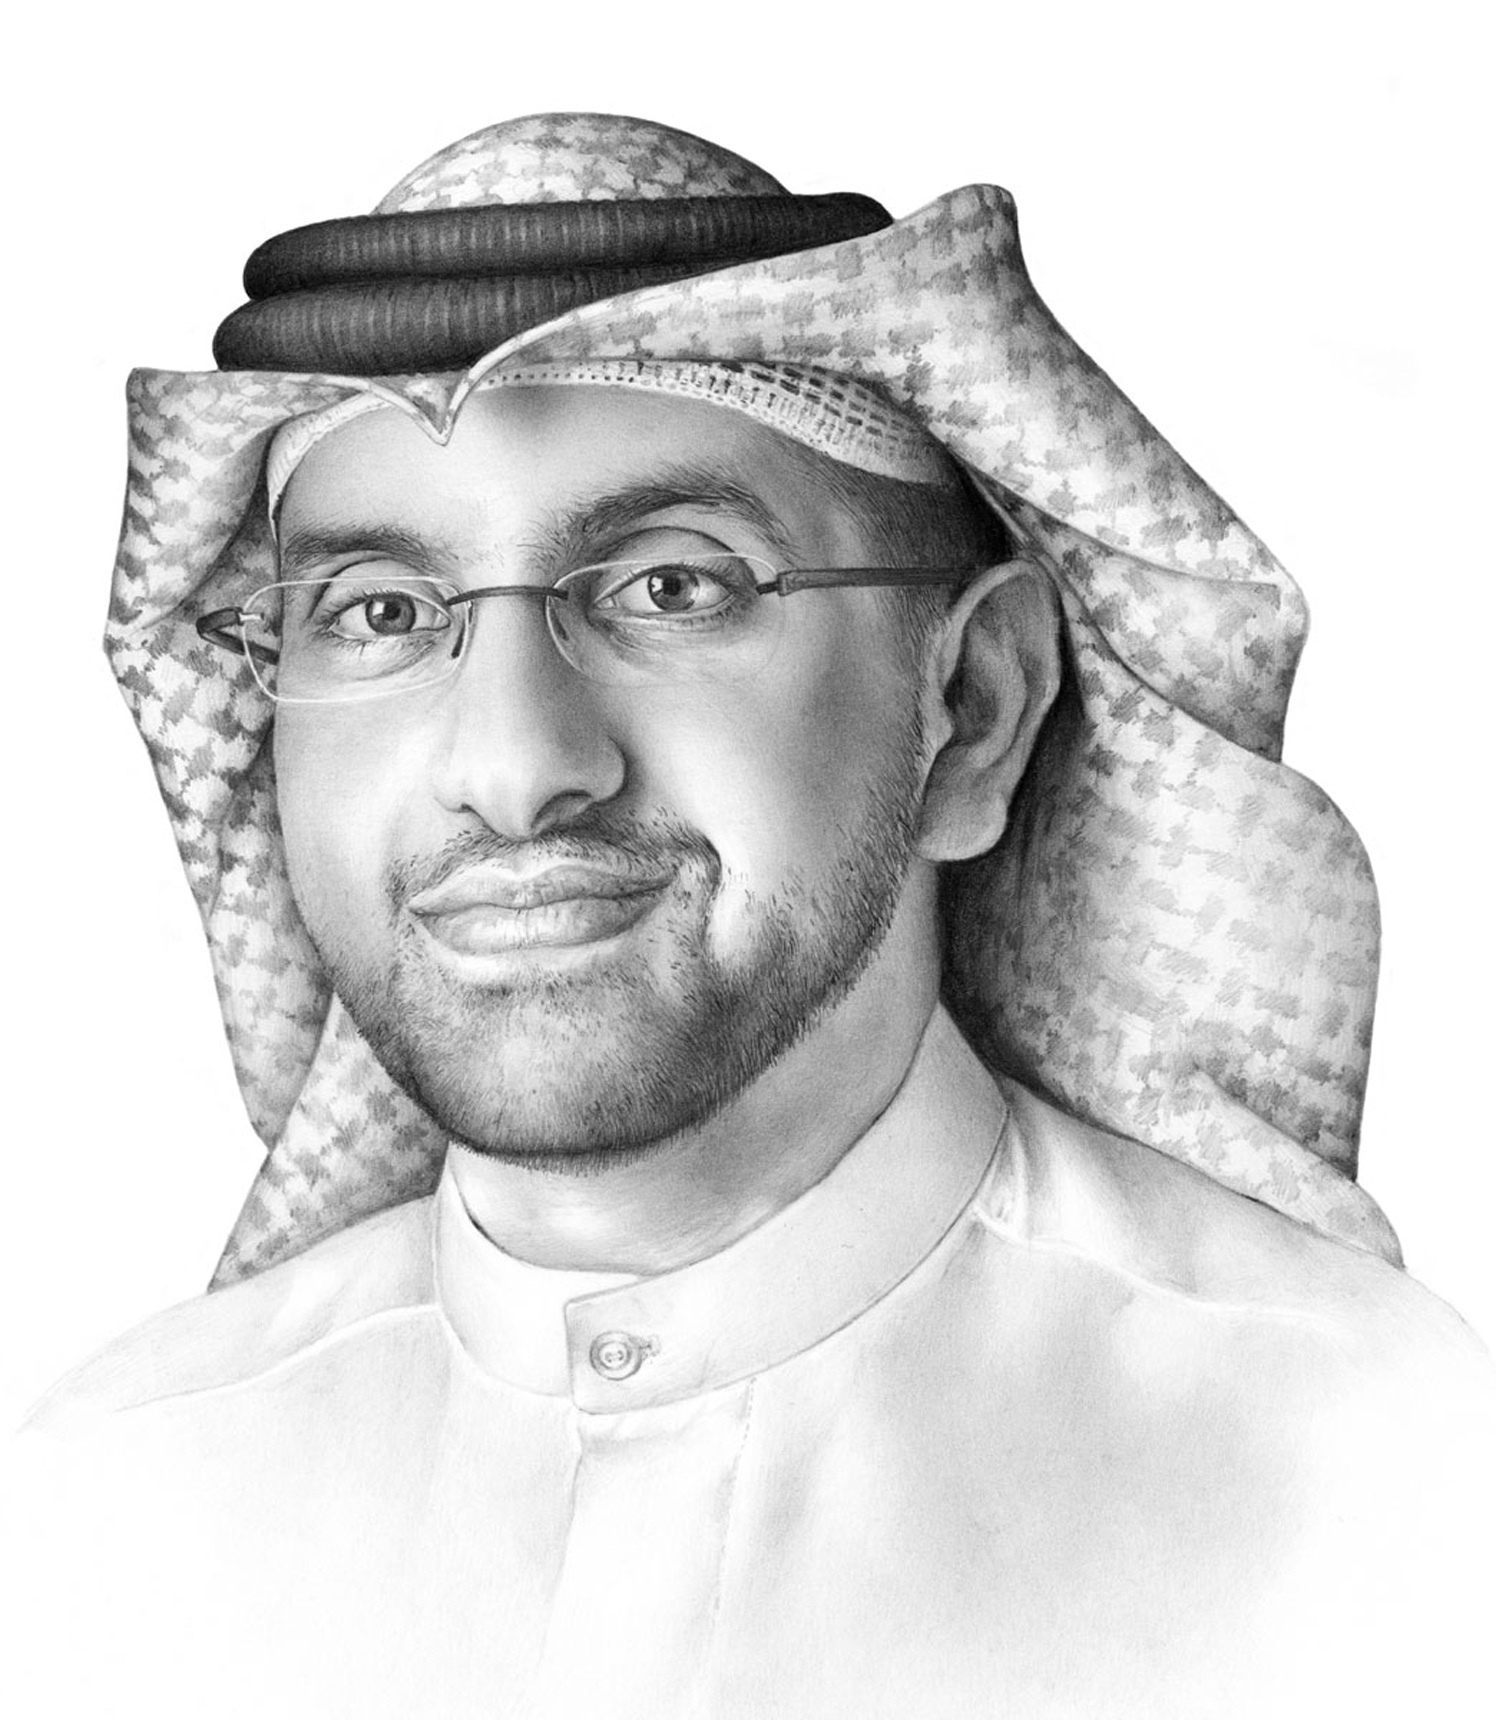 Male Portrait With Glasses